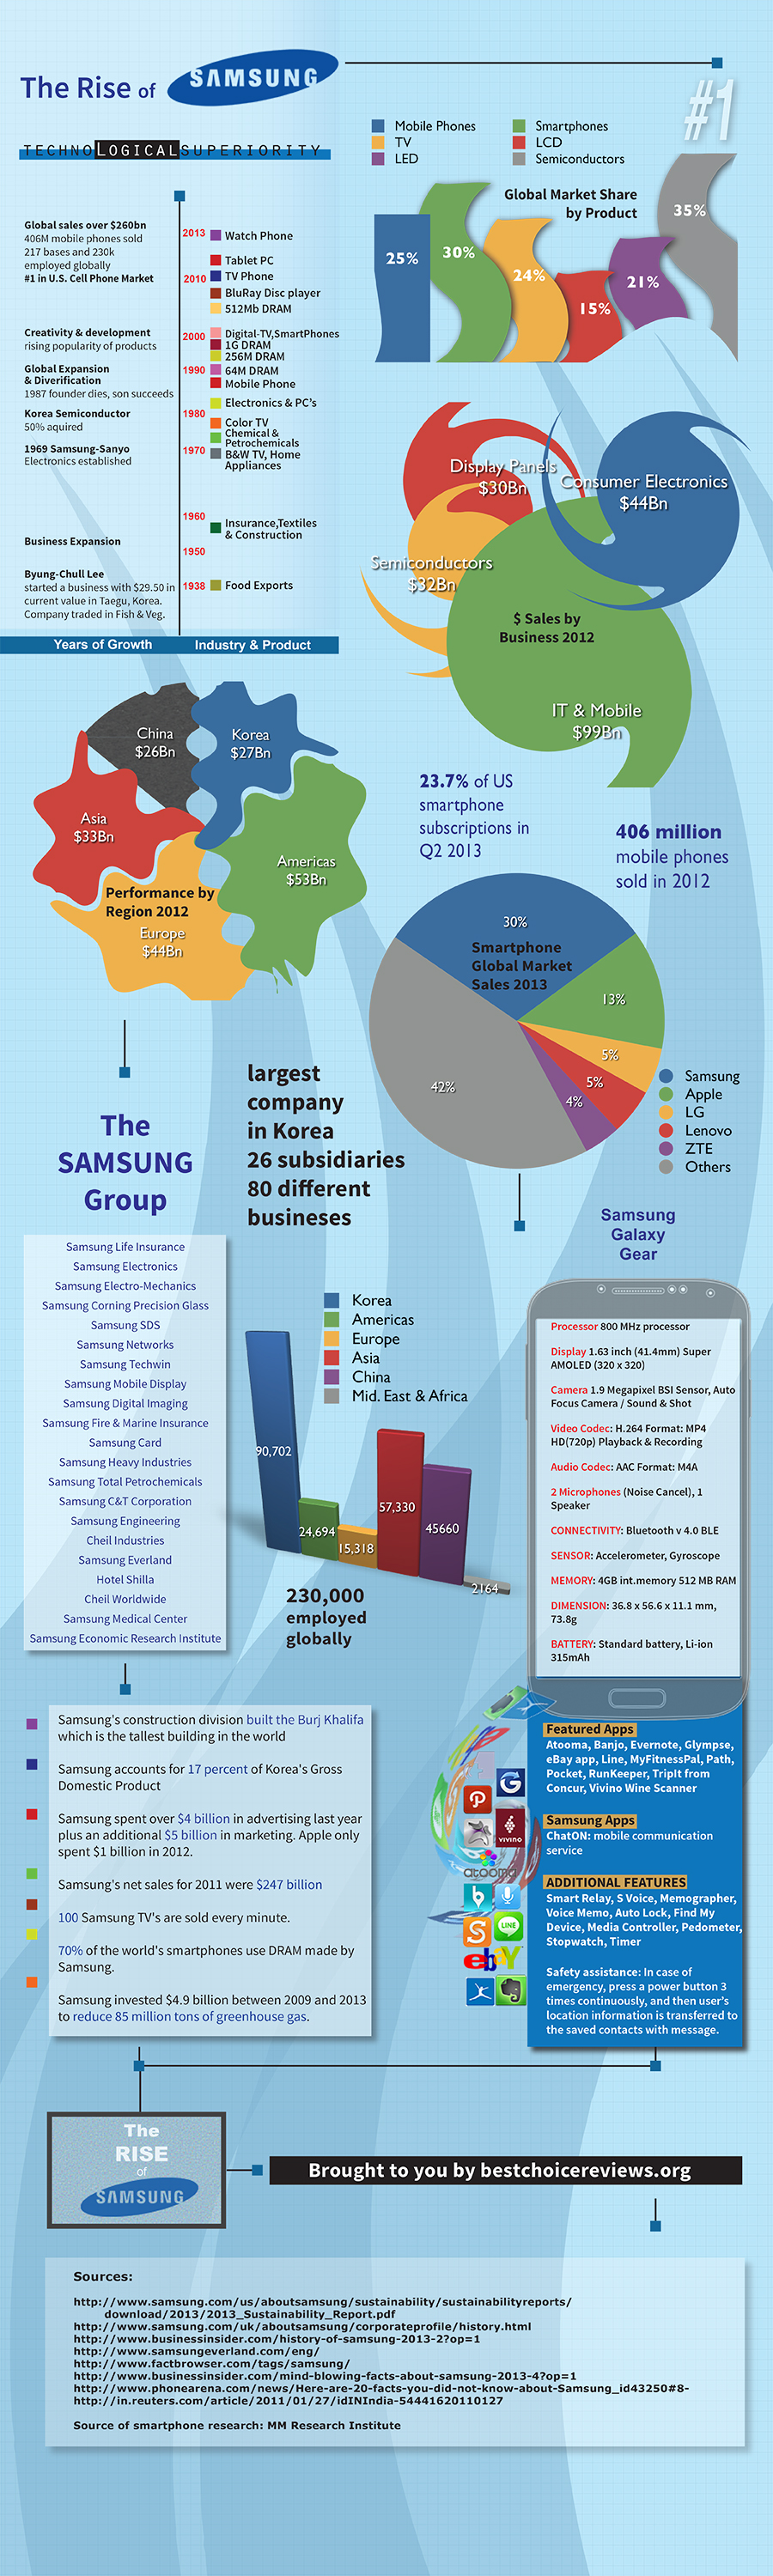 Infographic The Rise of Samsung